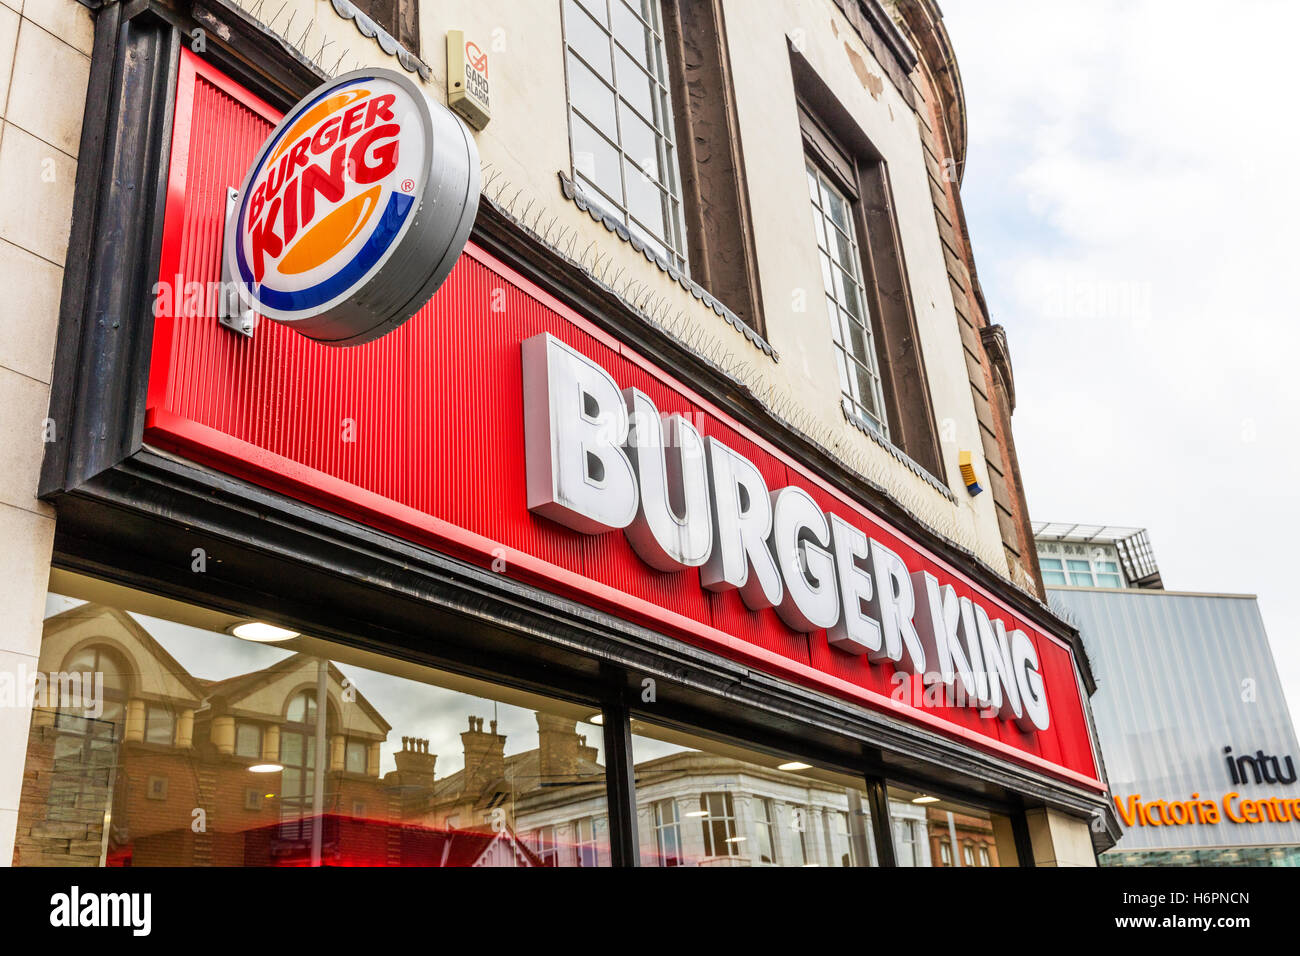 Burger King Shop Front Sign Building Exterior Facade Signs Signage Hi8gh Street Store Takeaway Food Fast